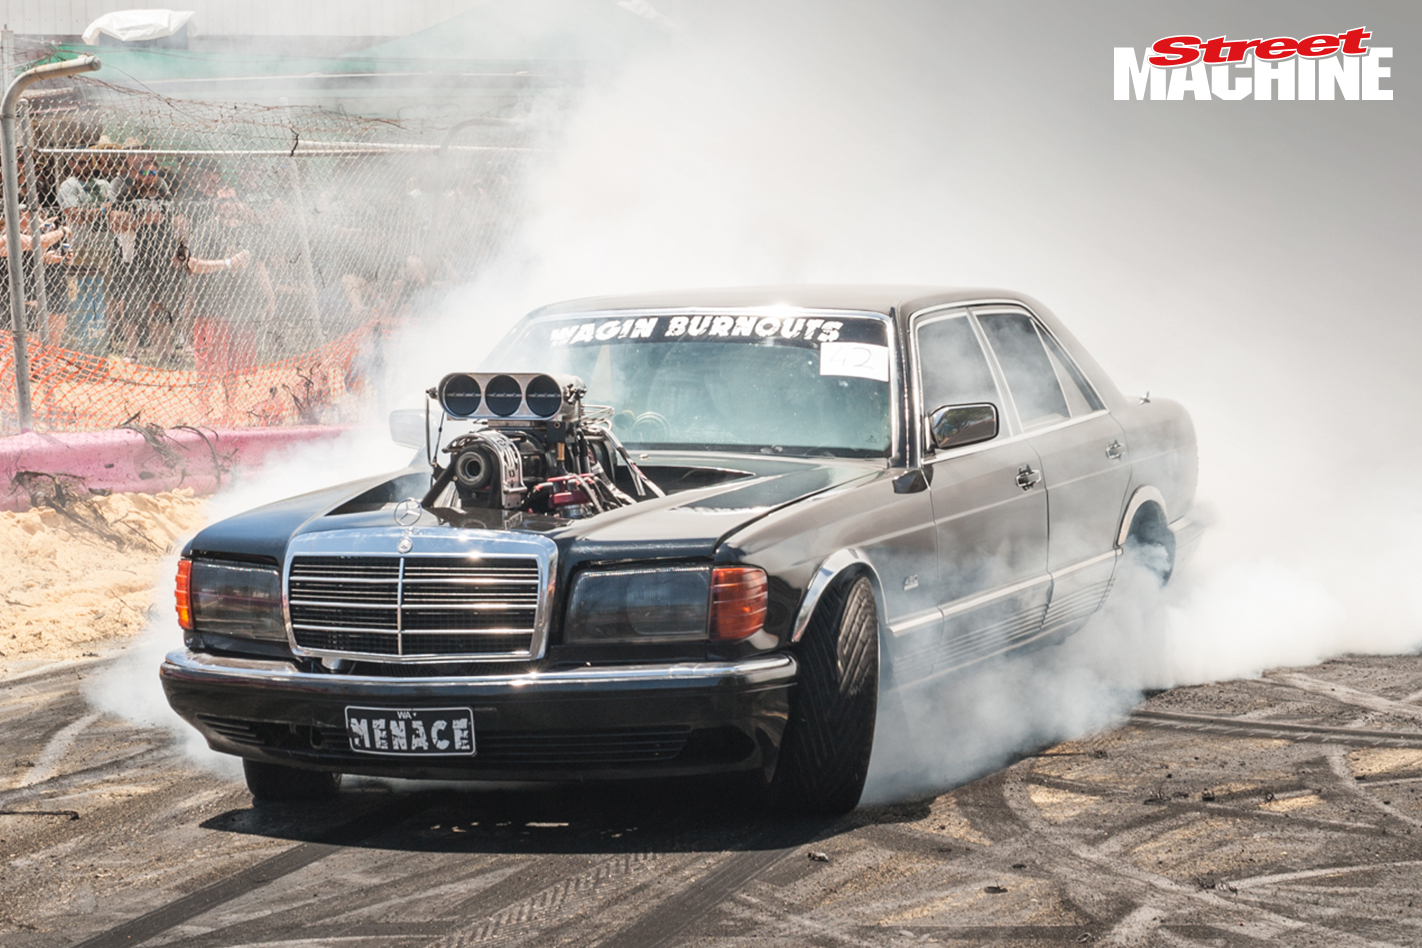 MENACE Mercedes Burnout 5591